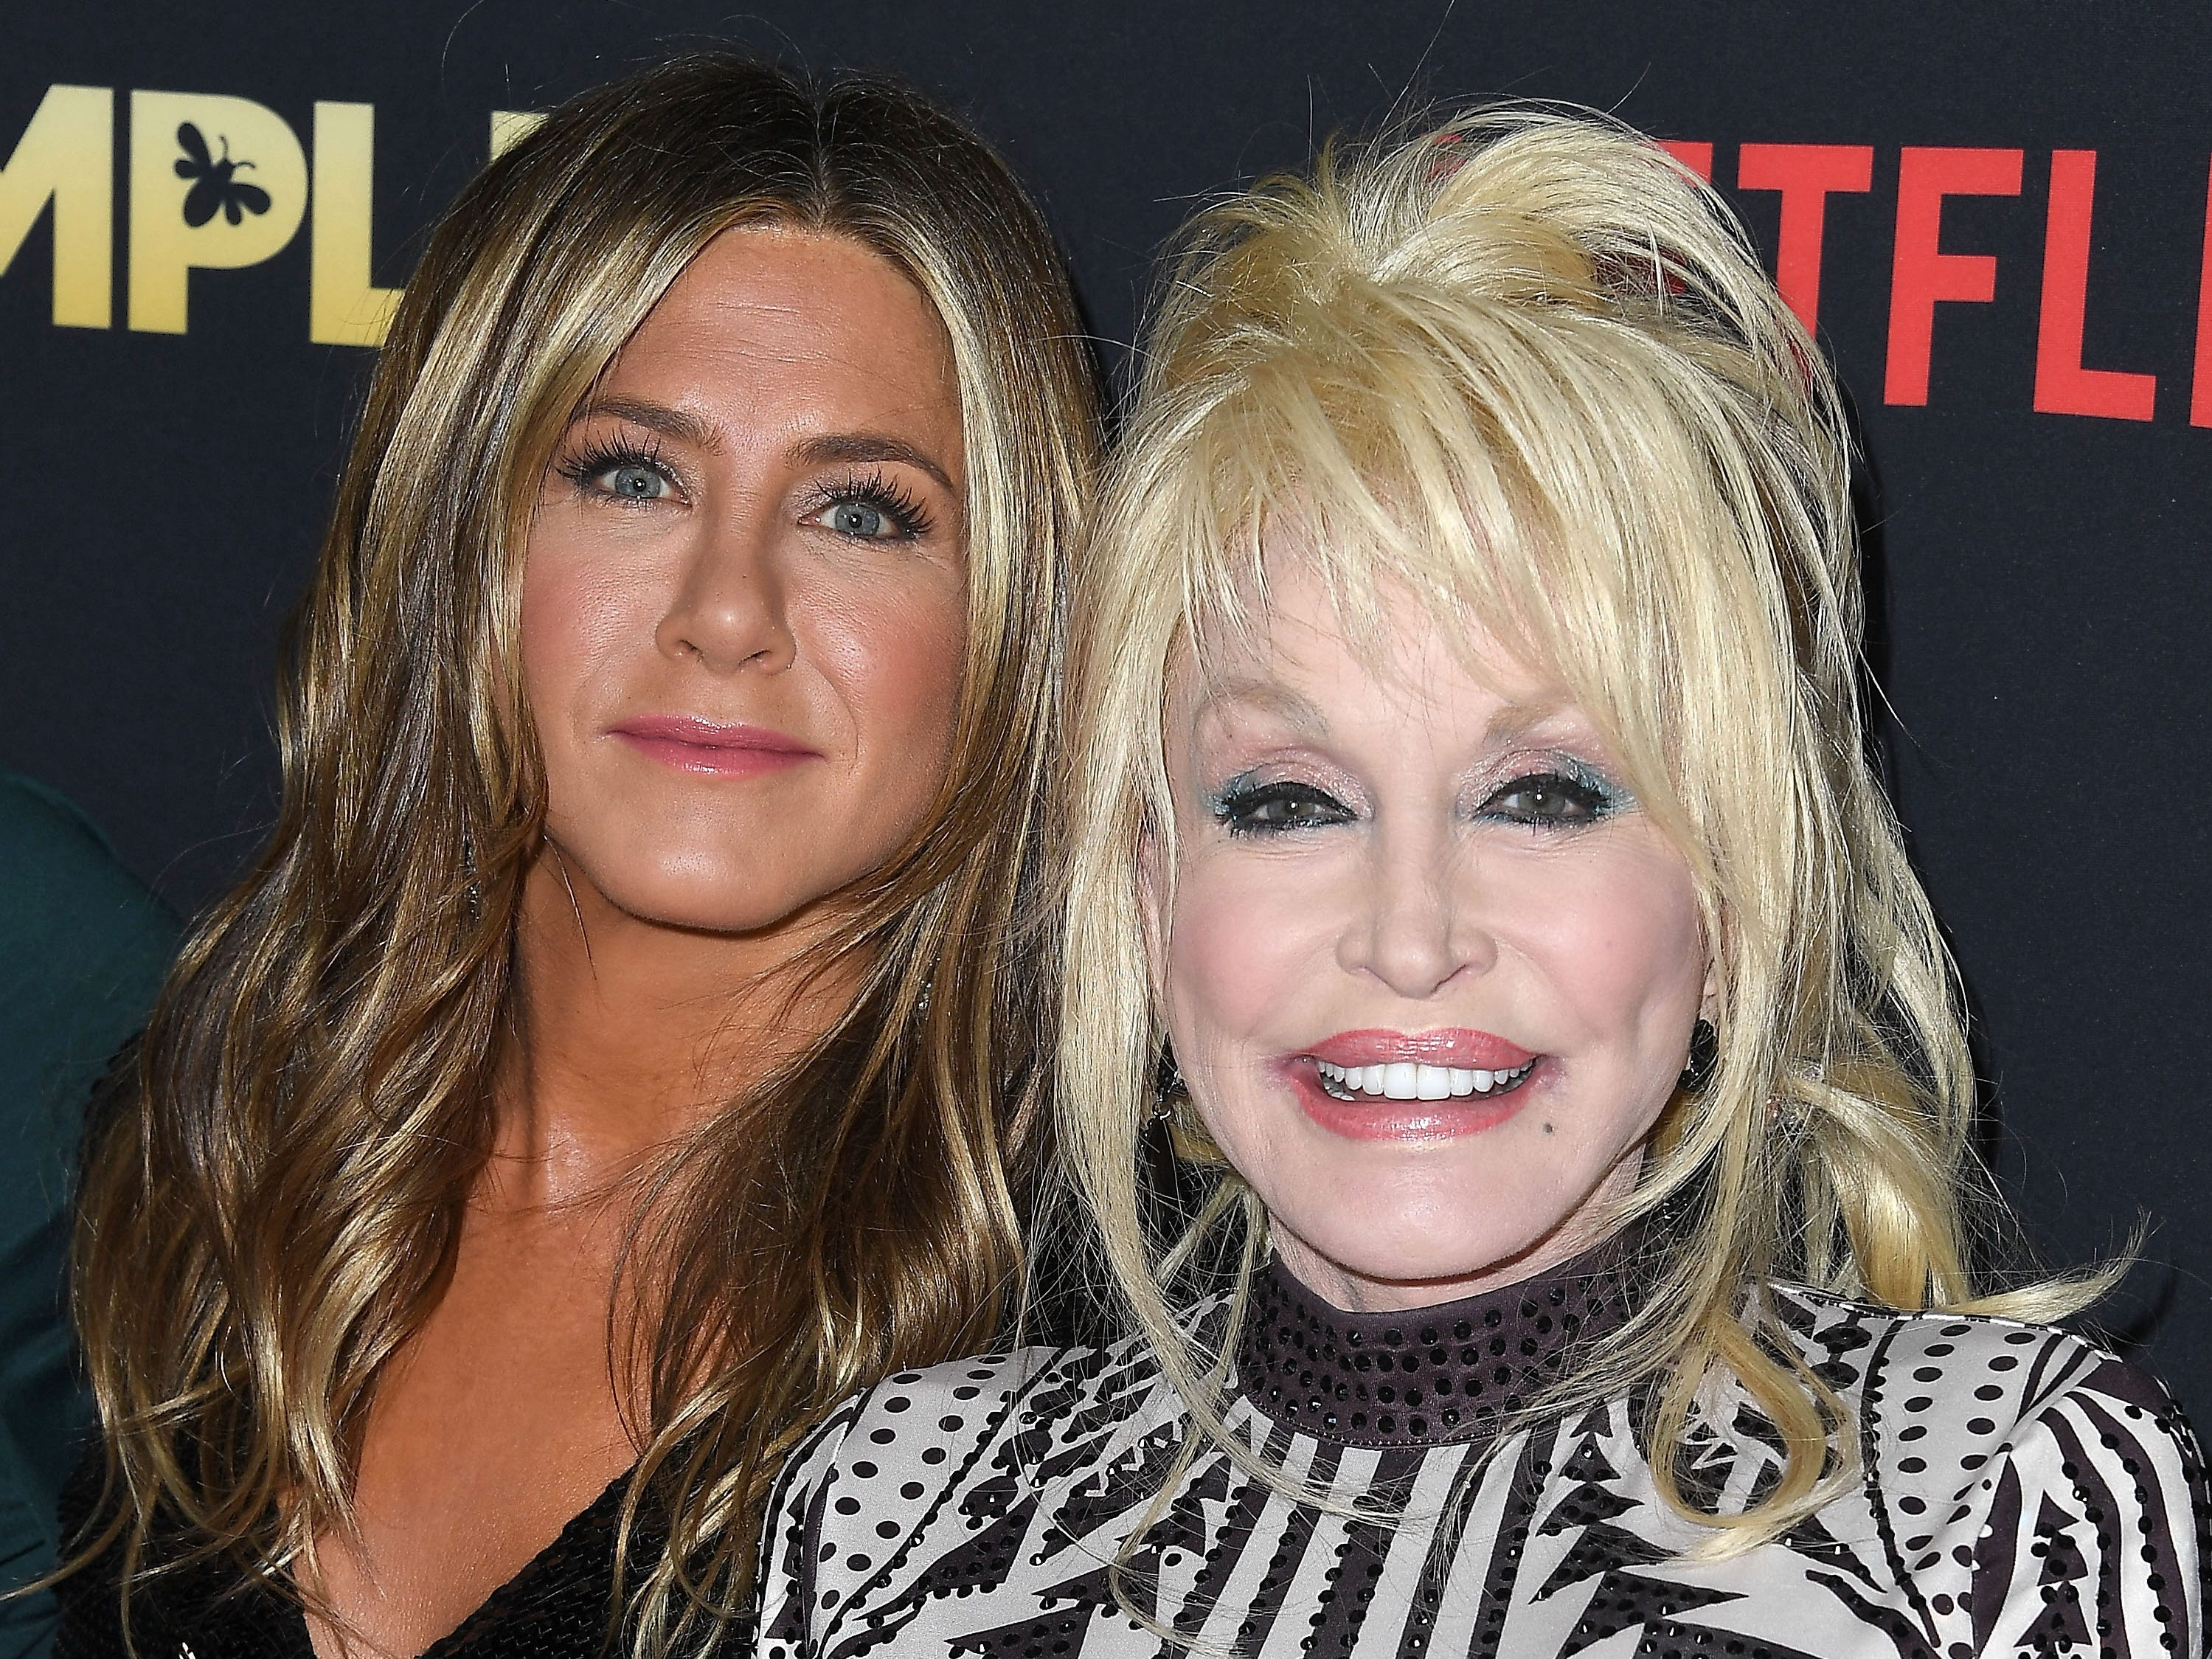 """While doing press for """"Dumplin',"""" Parton, whose music can be heard throughout the film, told Jimmy Fallon that her husband fantasizes about a threesome with Aniston, though she discounted the odds of it ever happening. """"He can't even get it out to pee, much less for three."""" How did Aniston respond? She found it flattering and hilarious, telling USA TODAY """"No one in the world can get away with saying anything like that about their partner on live television, except Dolly. I mean, that is a quote."""""""